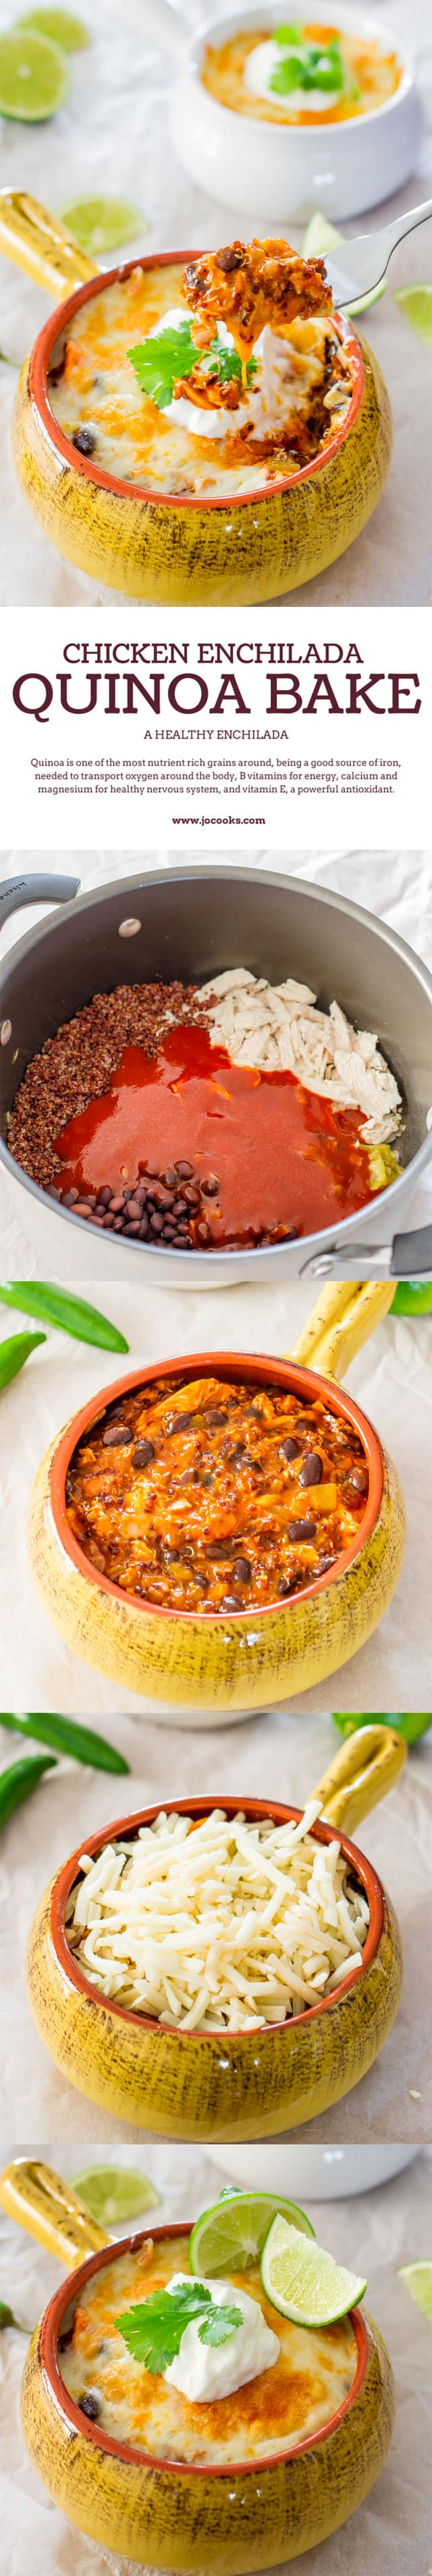 chicken-enchilada-quinoa-bake-collage